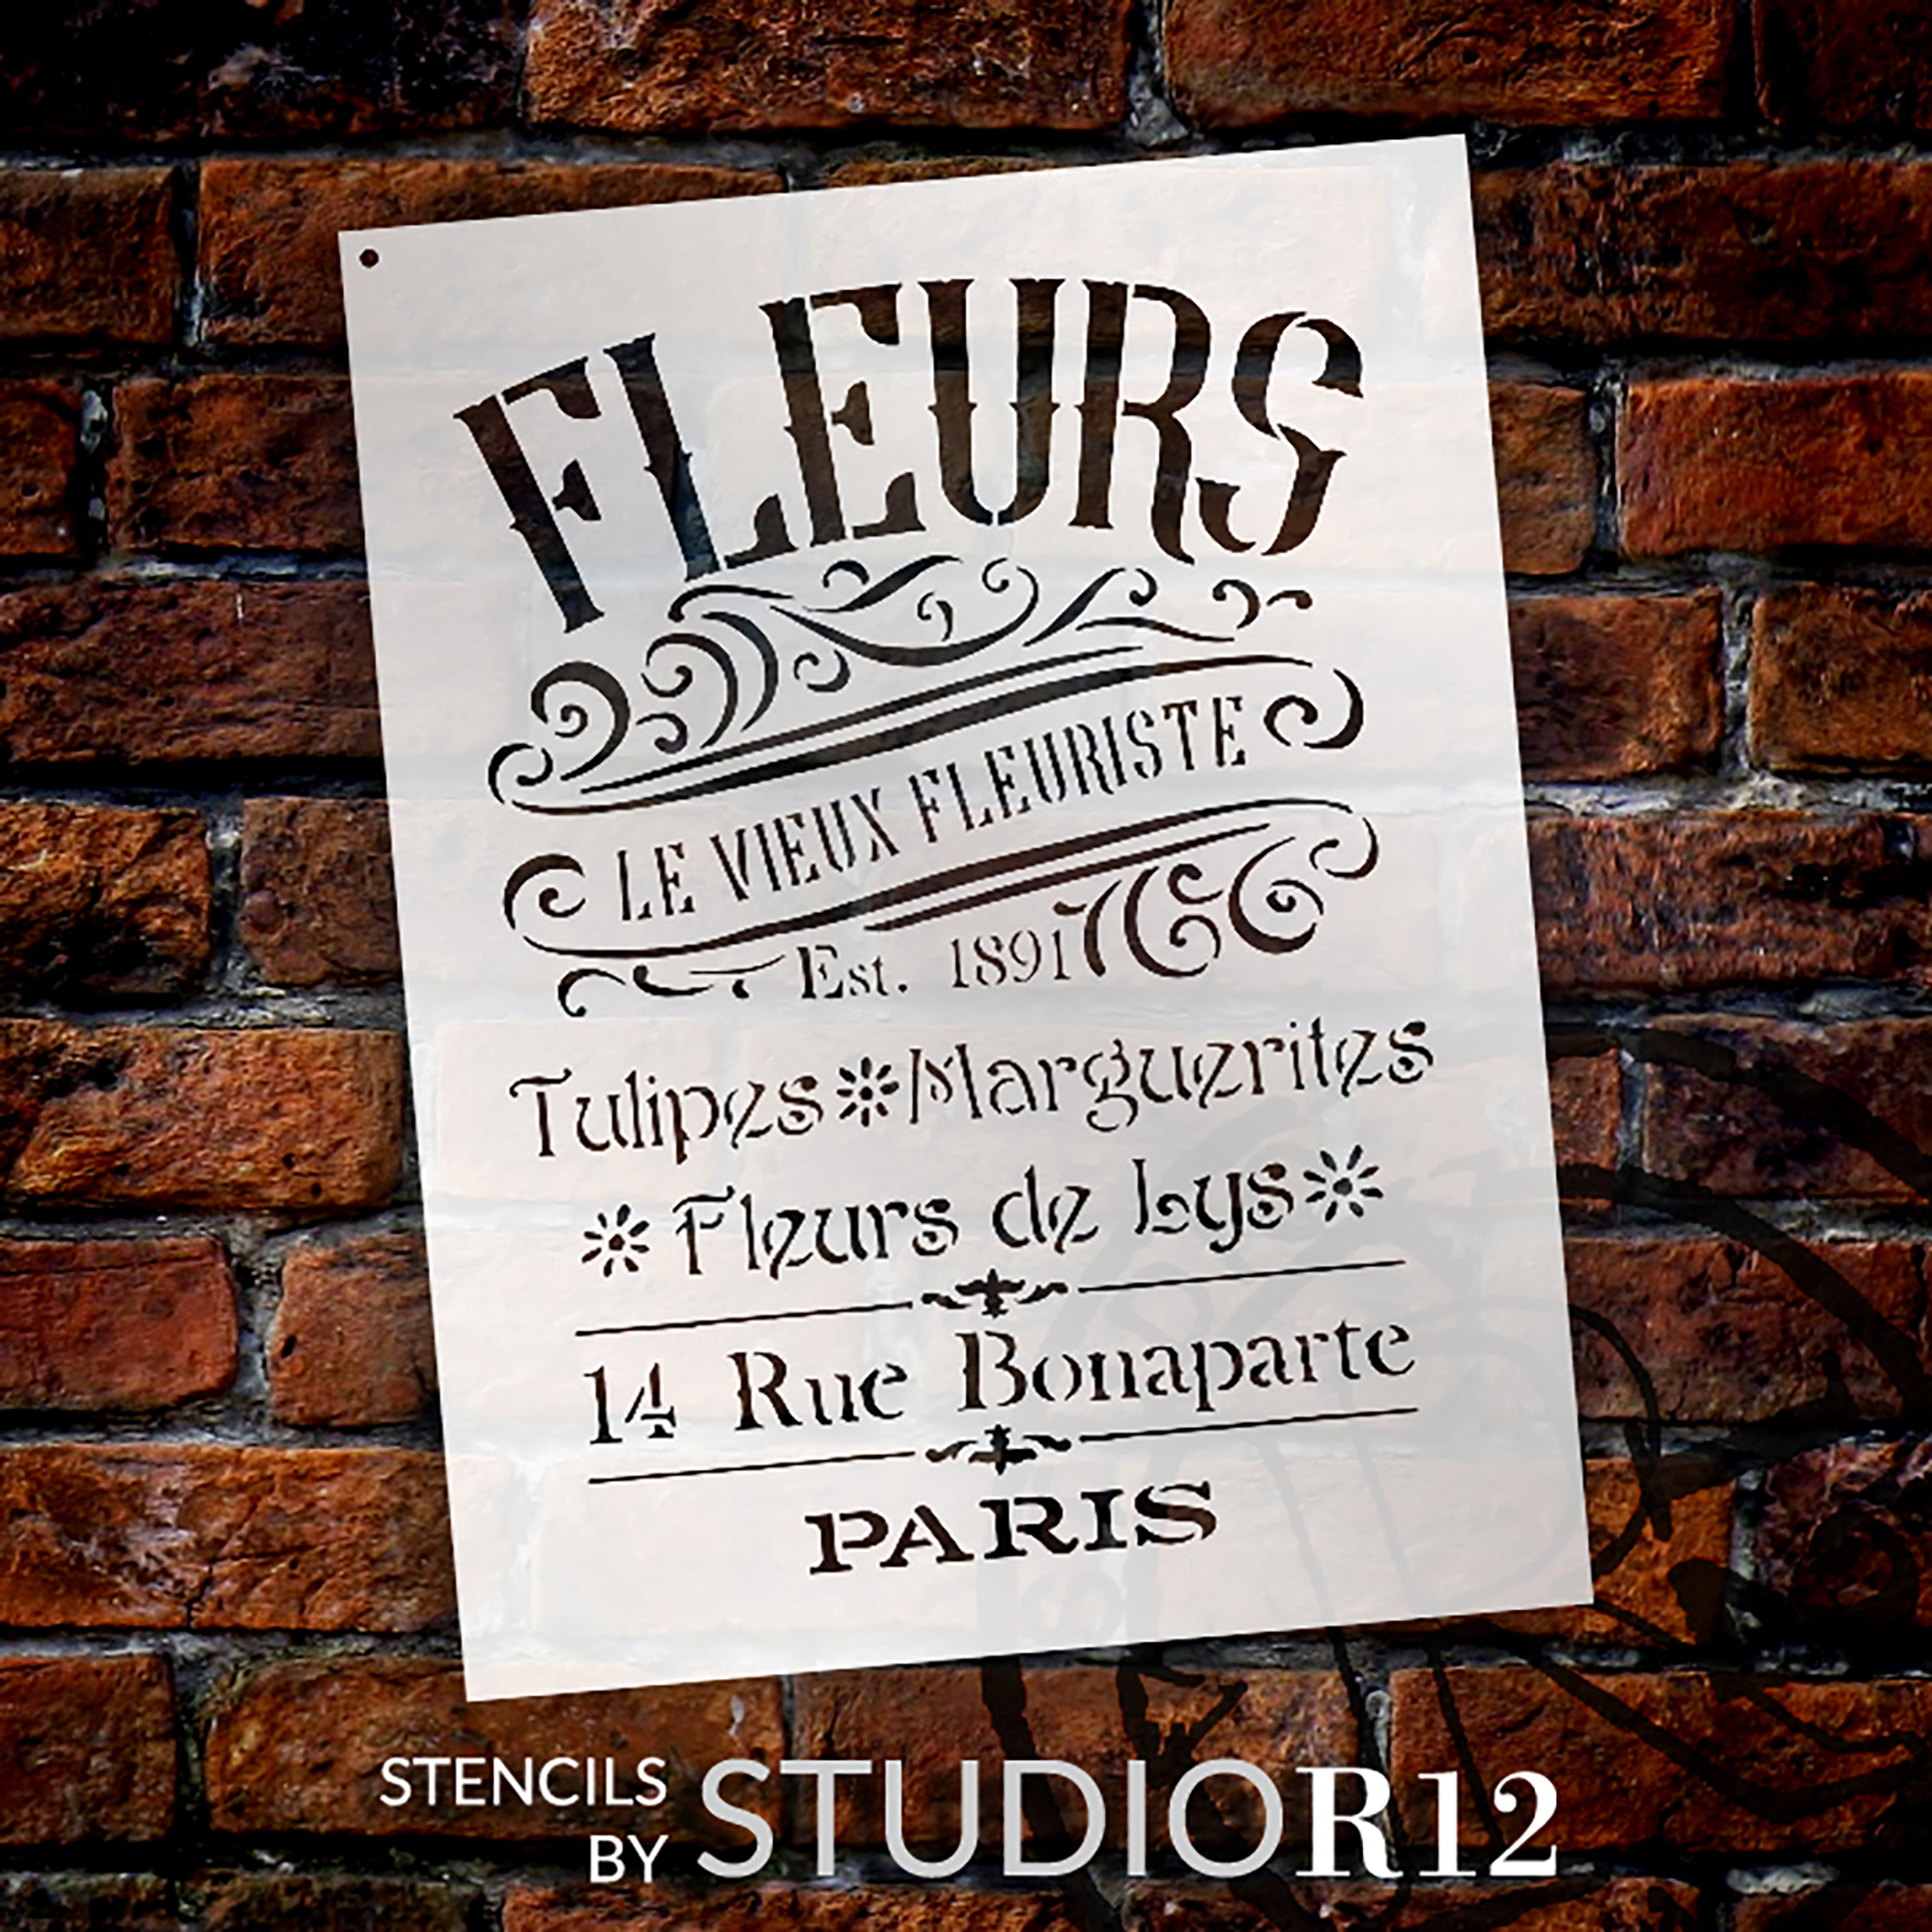 """The Old French Florist Word and Art Stencil - 8 1/2"""" x 11"""" - STCL1429_1 - by StudioR12"""